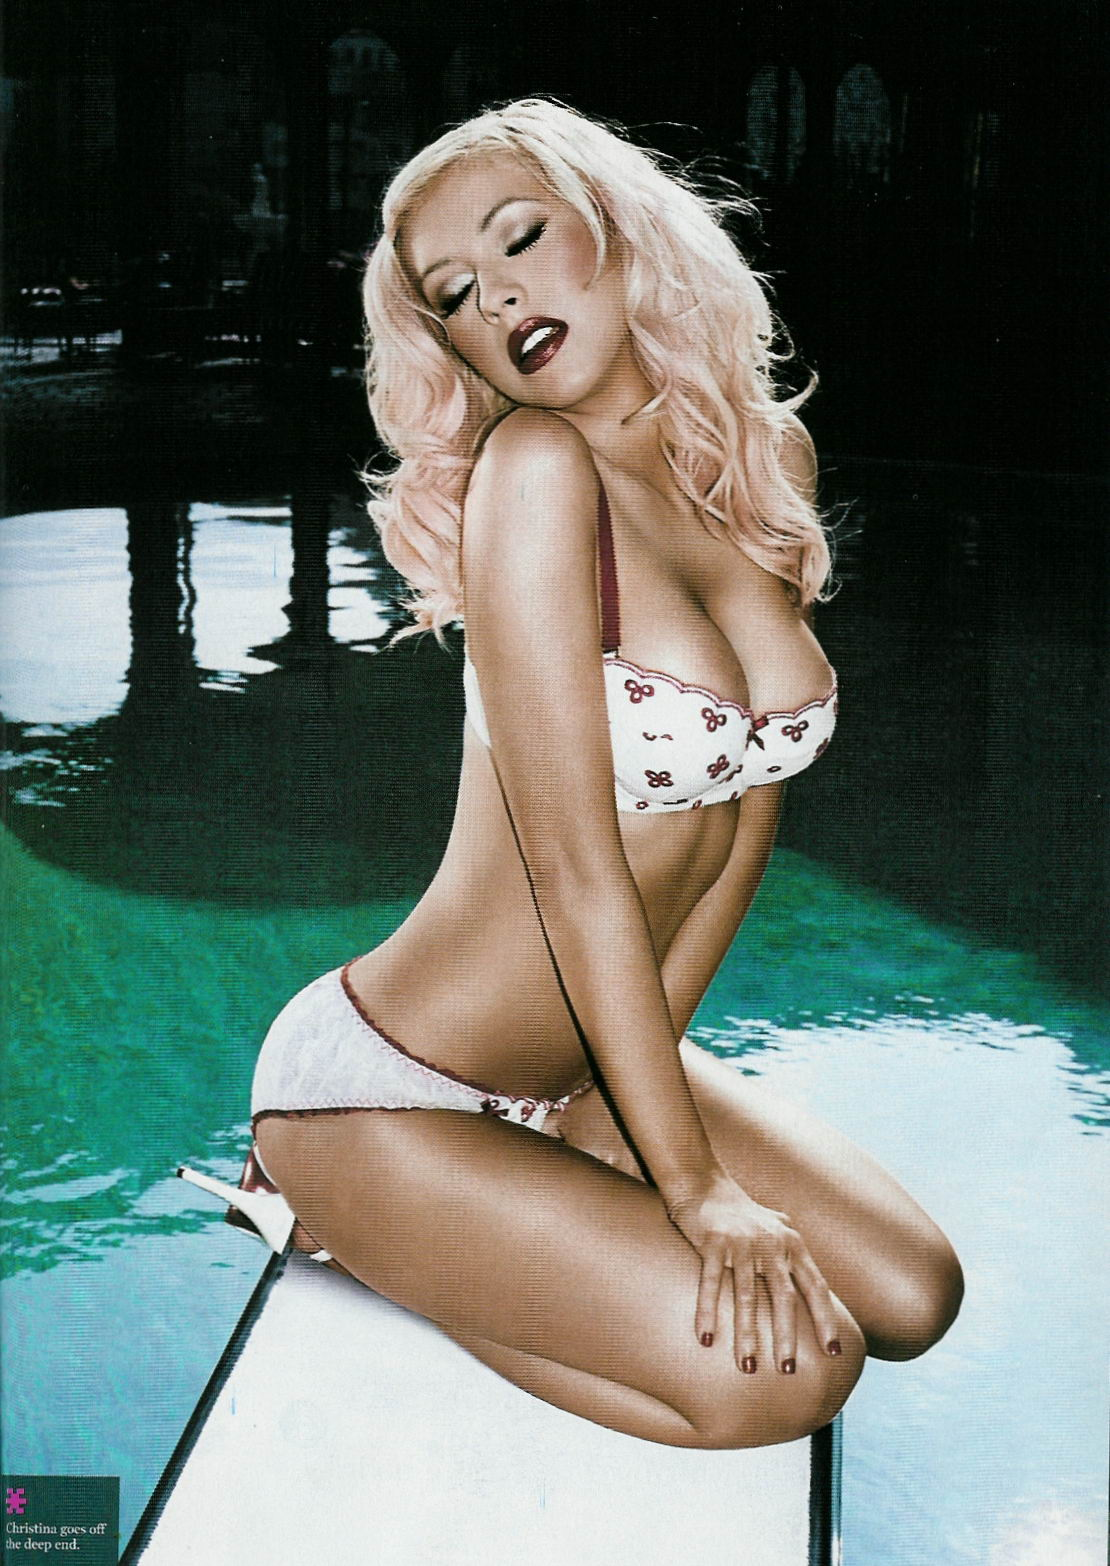 Christina, aguilera naked - free pictures and videos